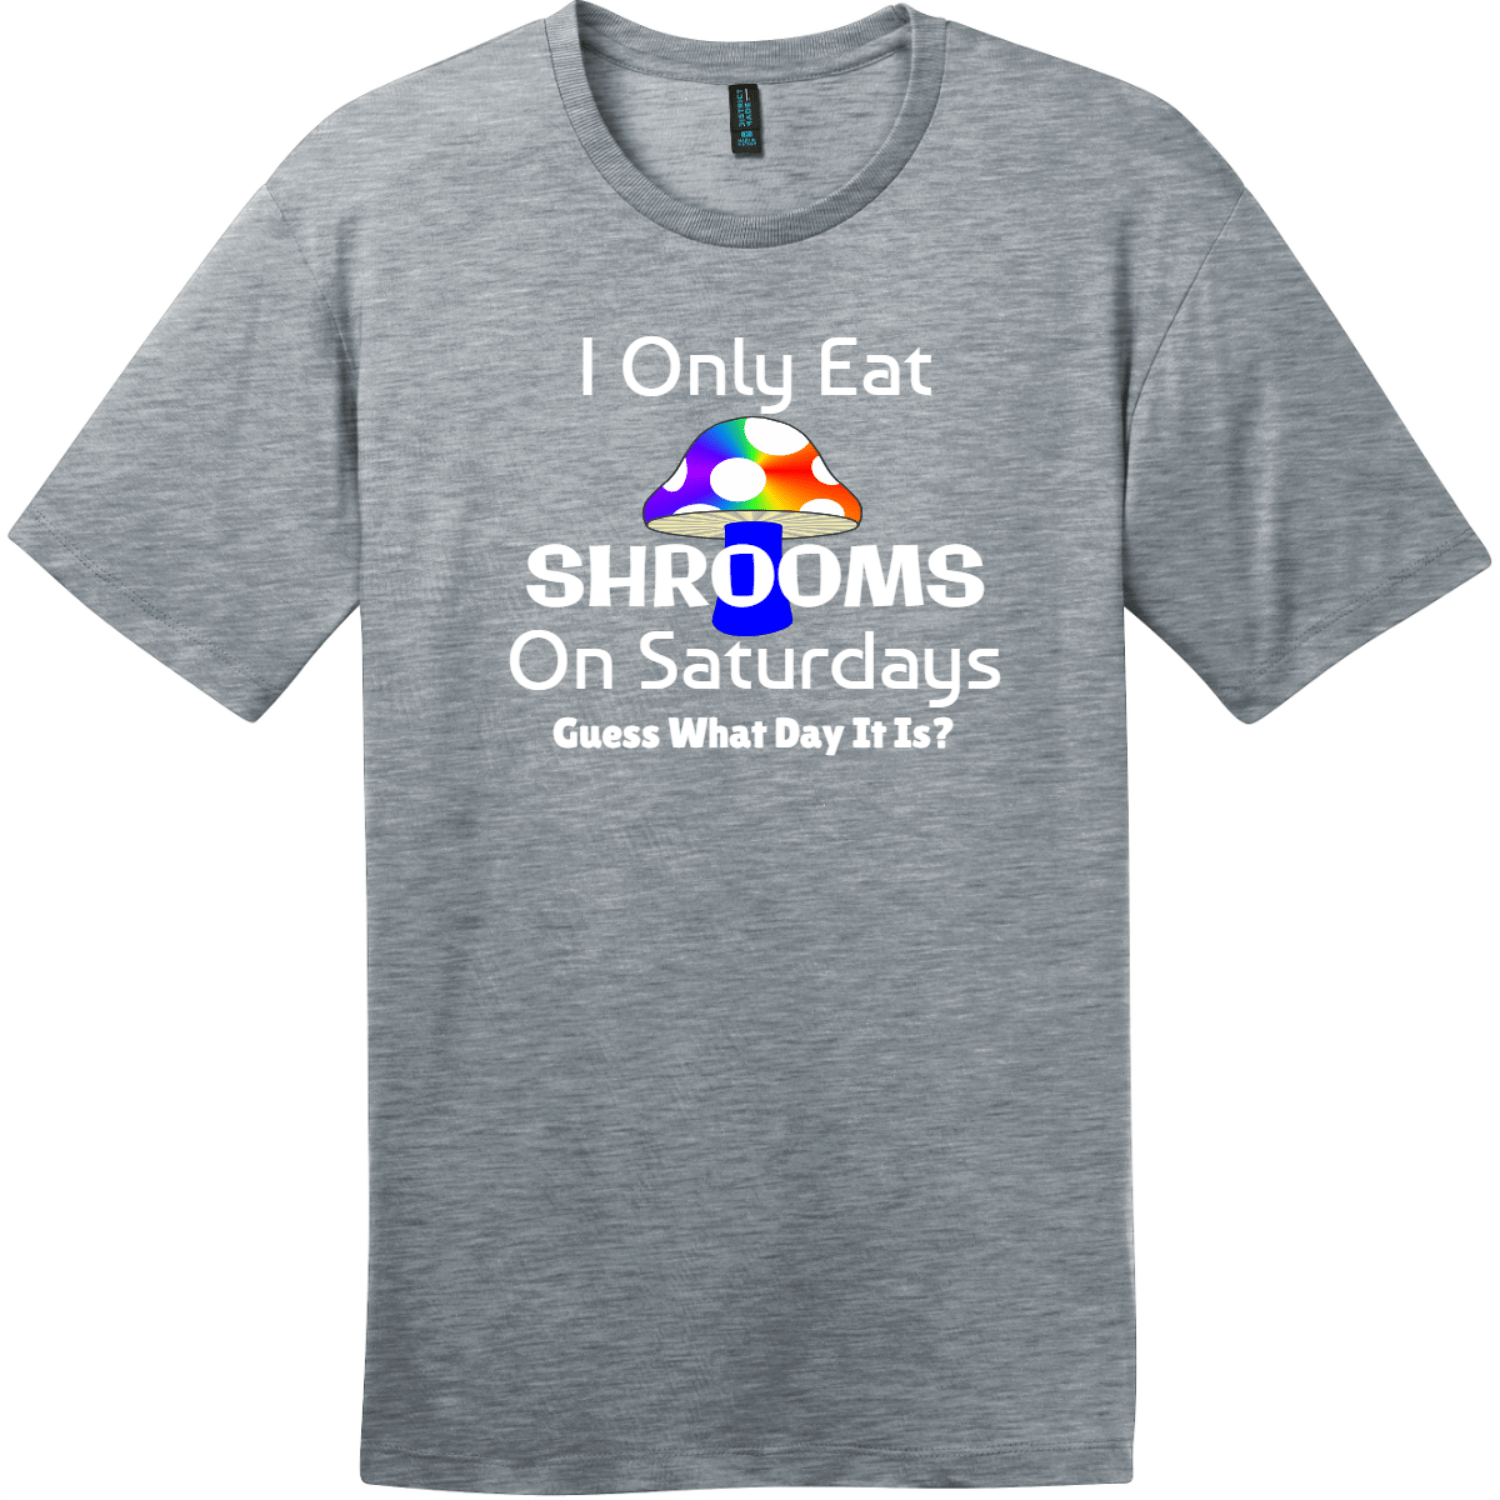 I Only Eat Shrooms On Saturdays T-Shirt Heathered Steel District Perfect Weight Tee DT104